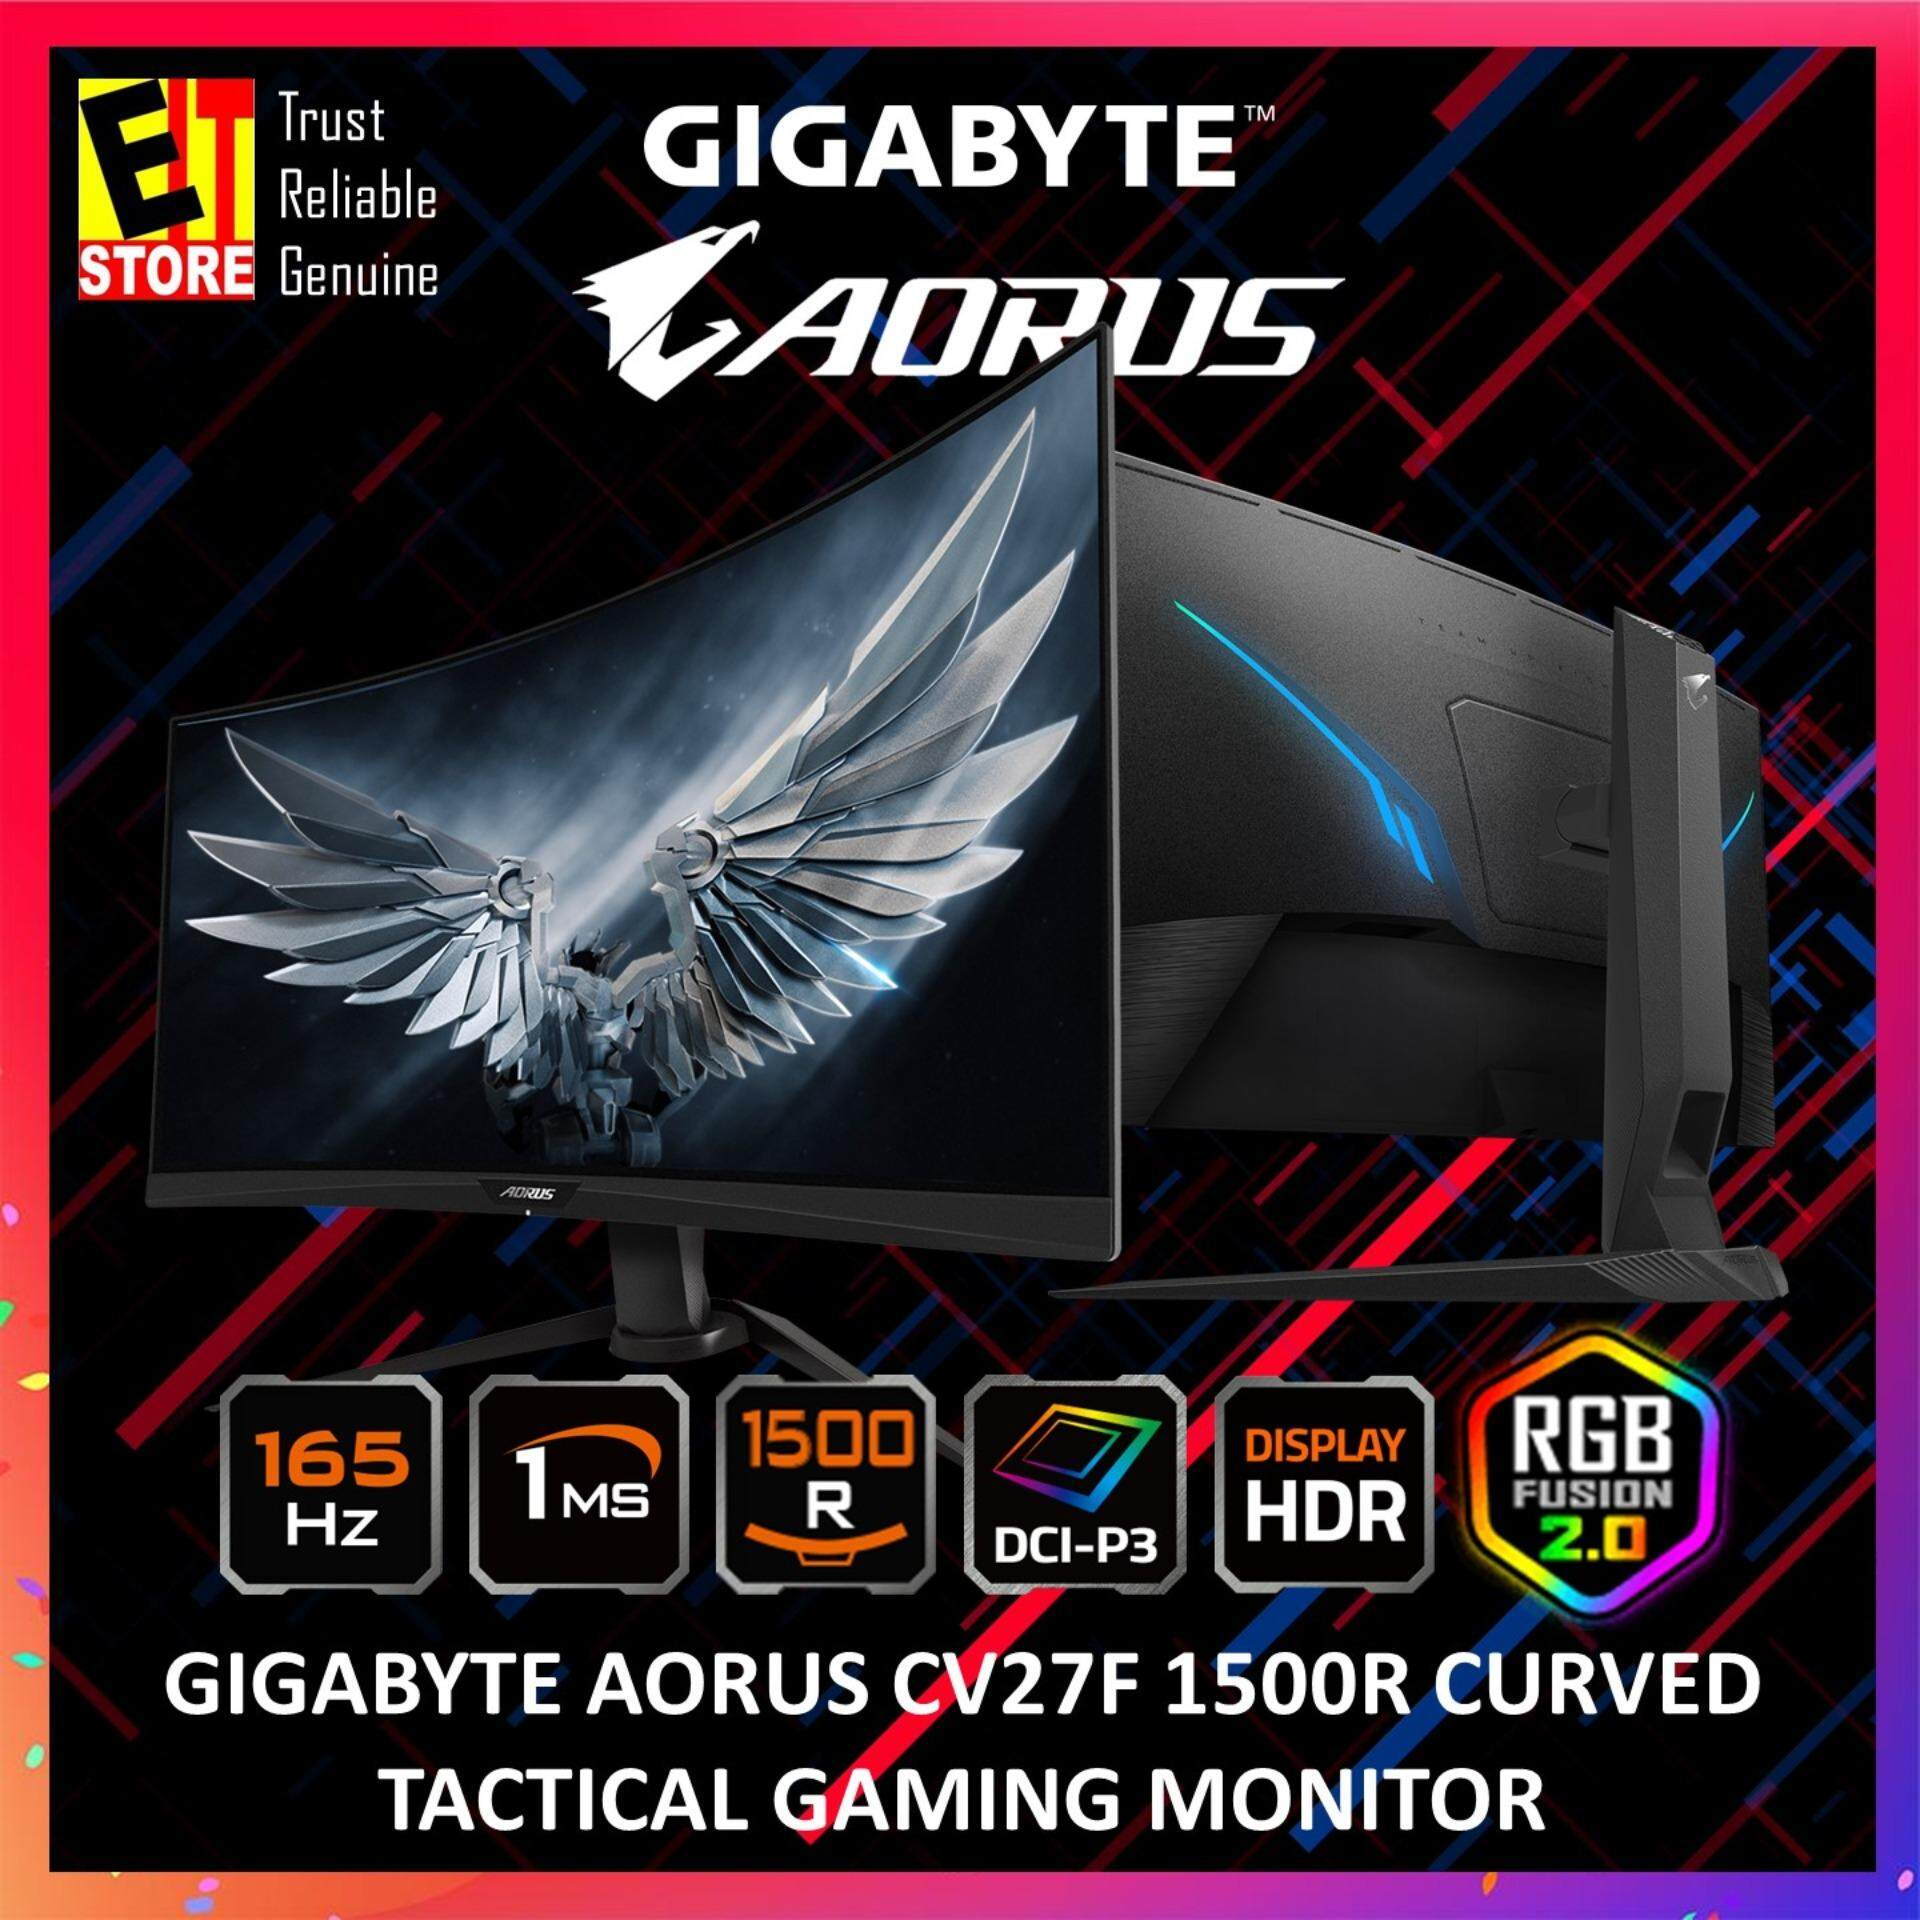 GIGABYTE AORUS CV27F 1500R CURVED TACTICAL GAMING MONITOR Malaysia